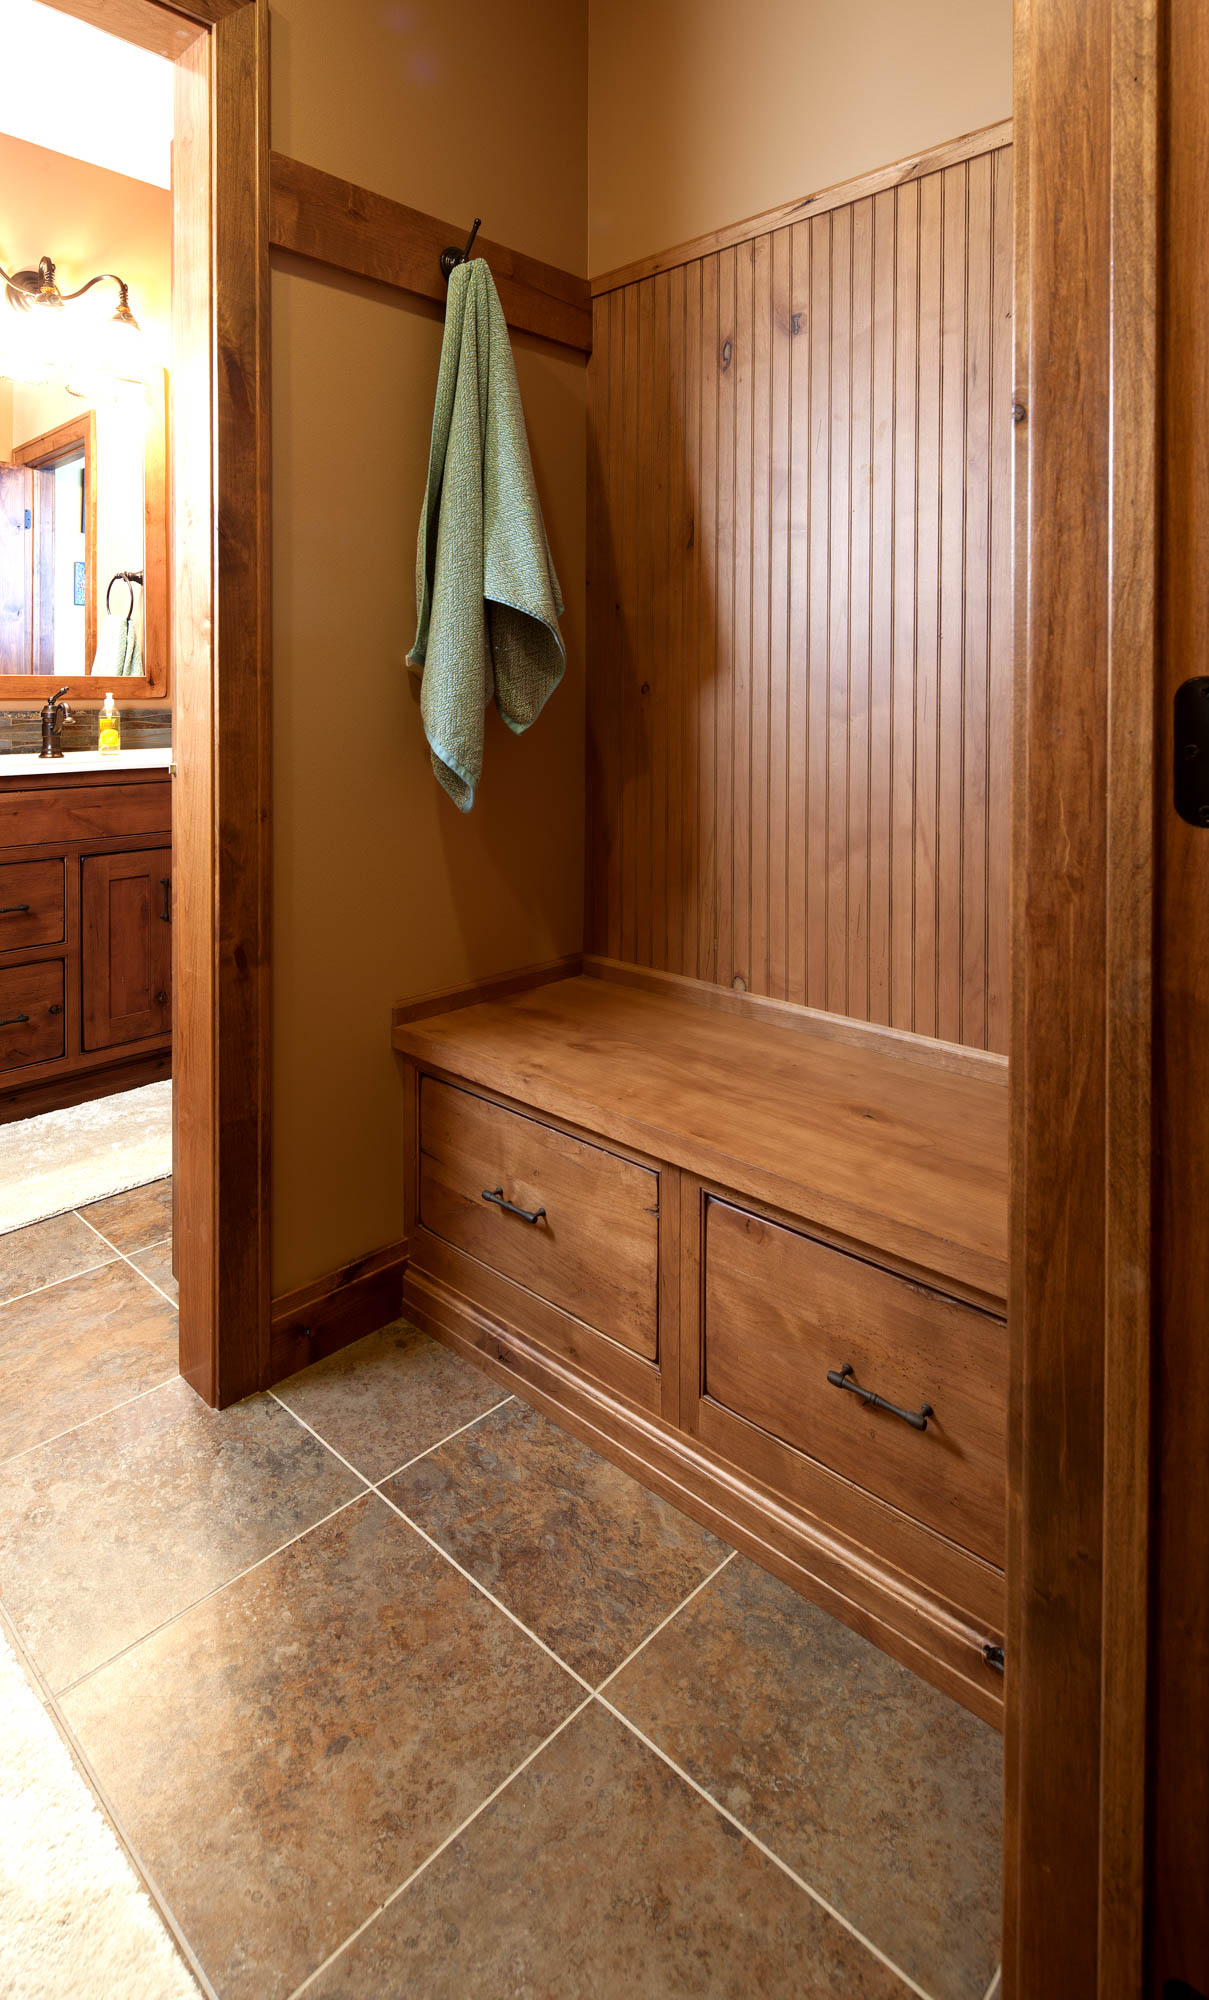 Stained guest bathroom locker in Vintage Nutmeg by Showplace Cabinetry